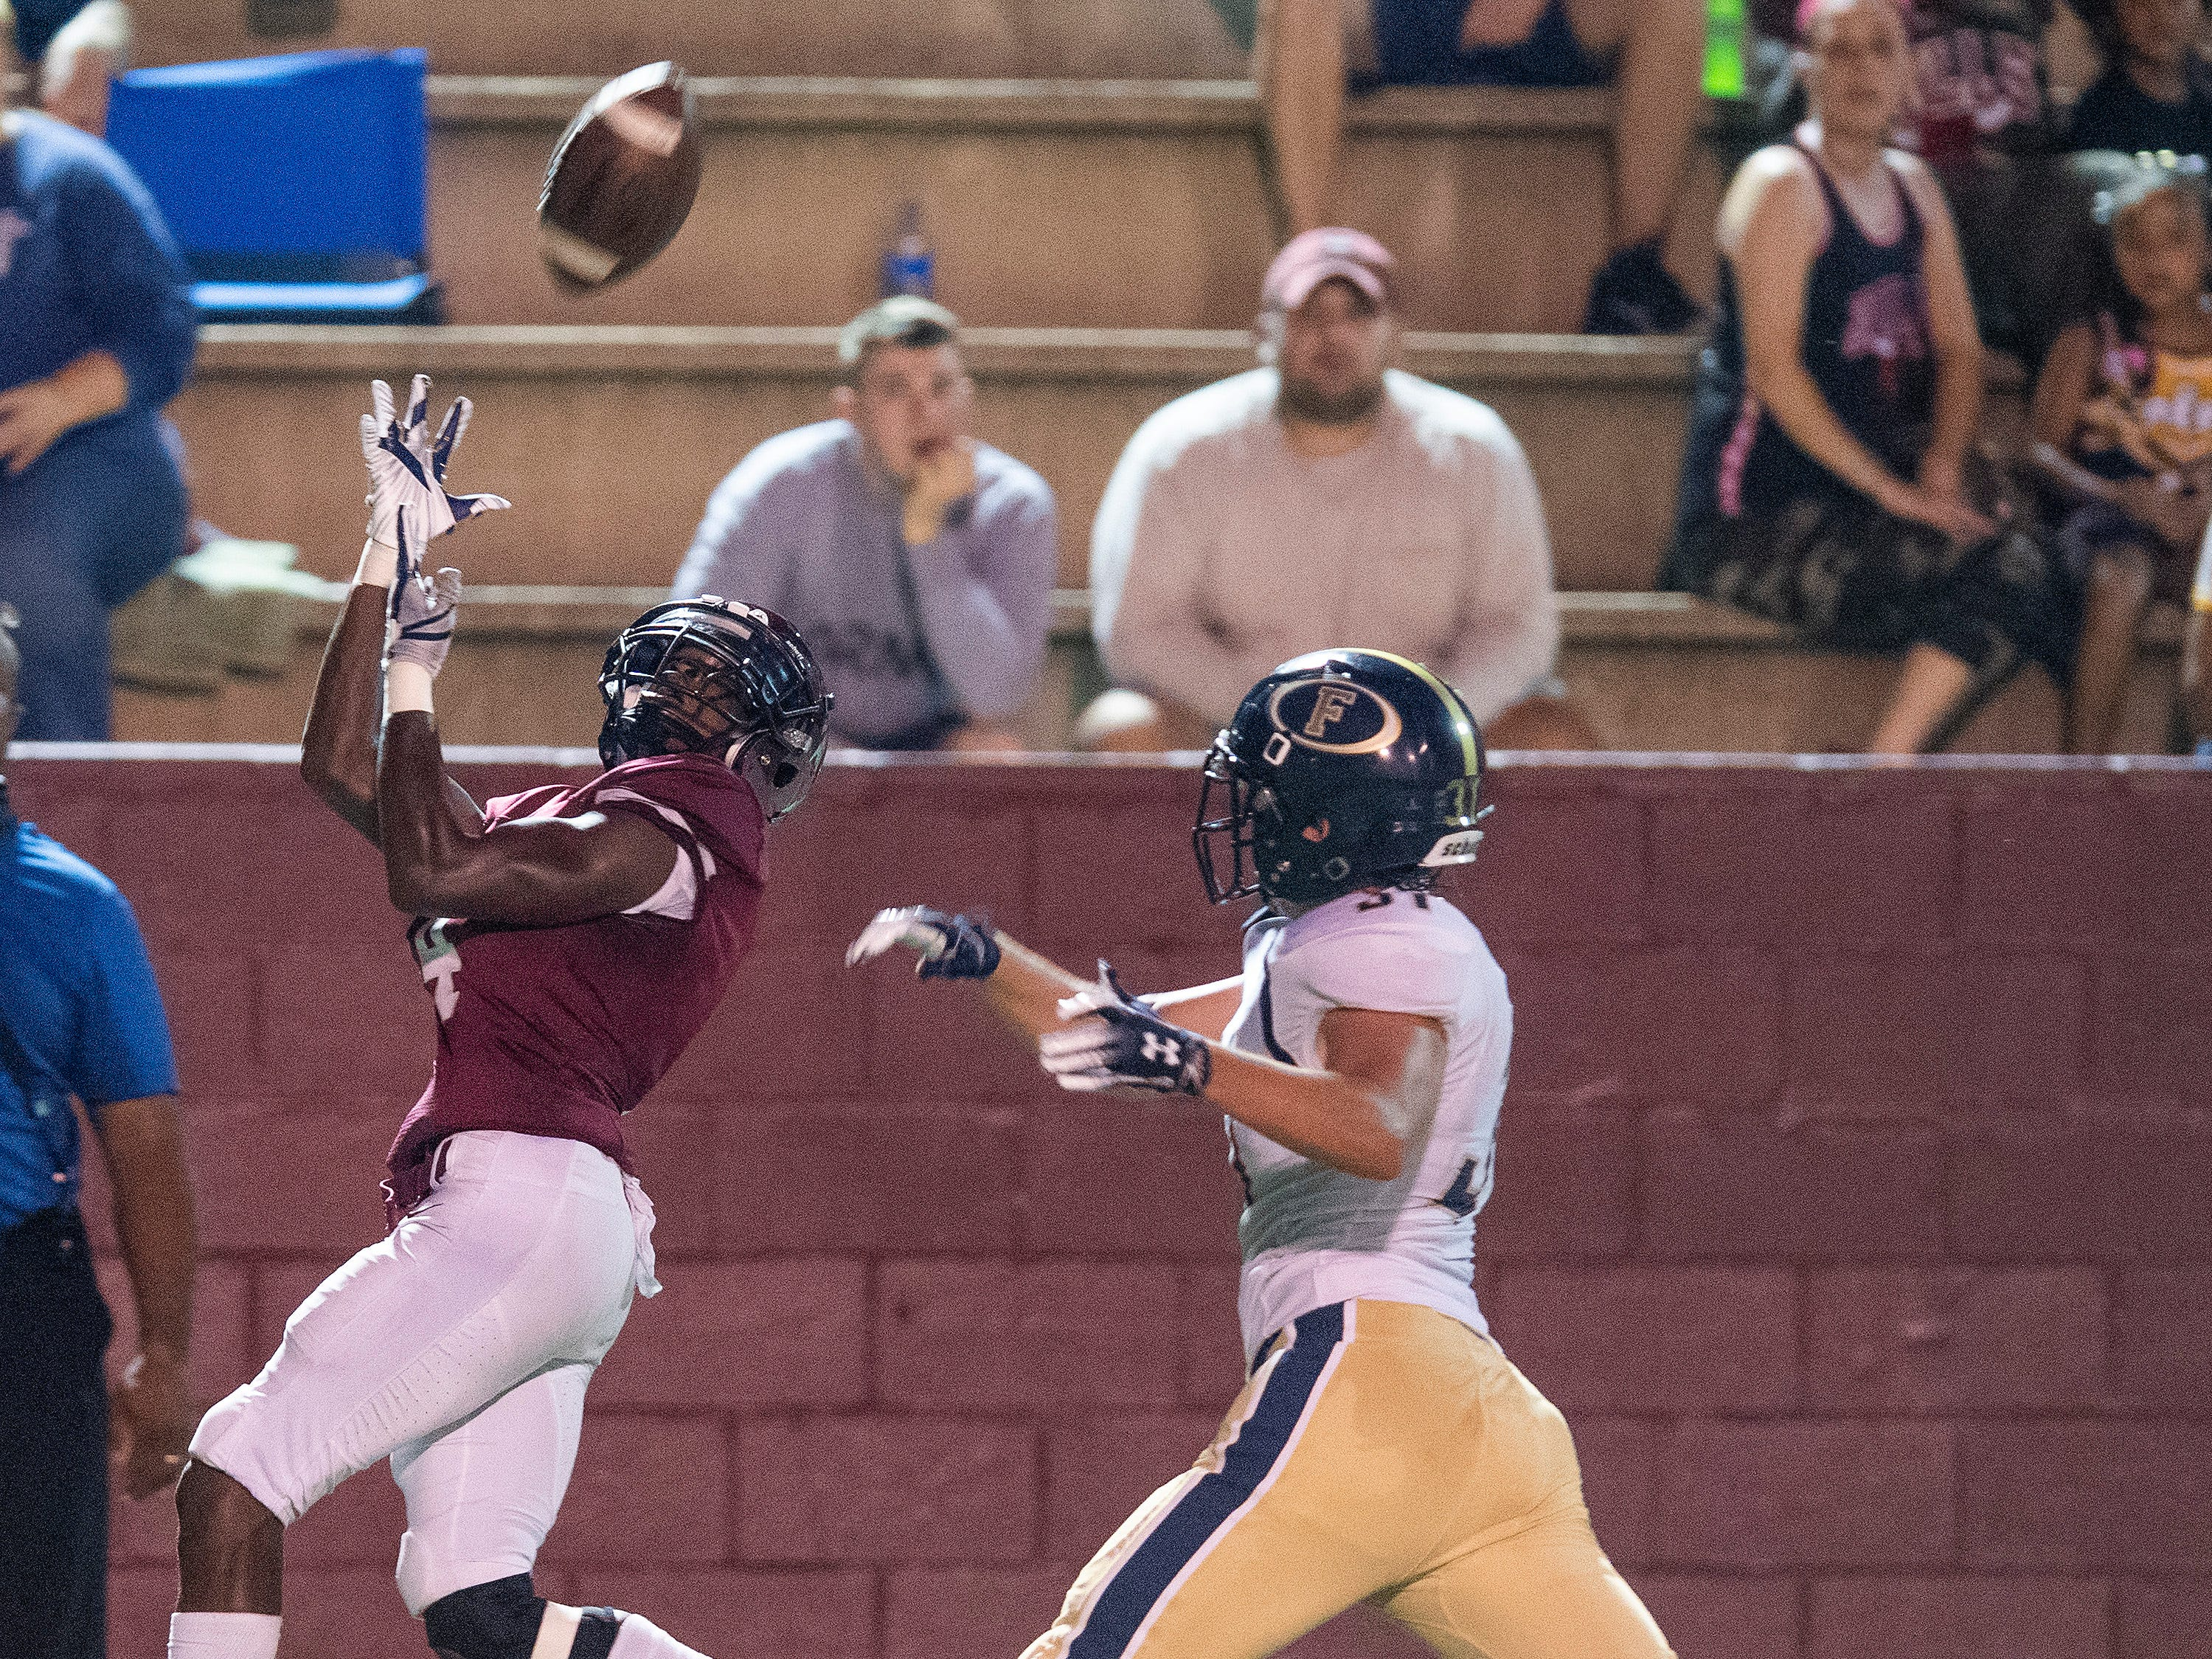 Prattville's Malik Smith misses a catch against Foley at Stanley-Jensen Stadium in Prattville, Ala., on Friday August 24, 2018.